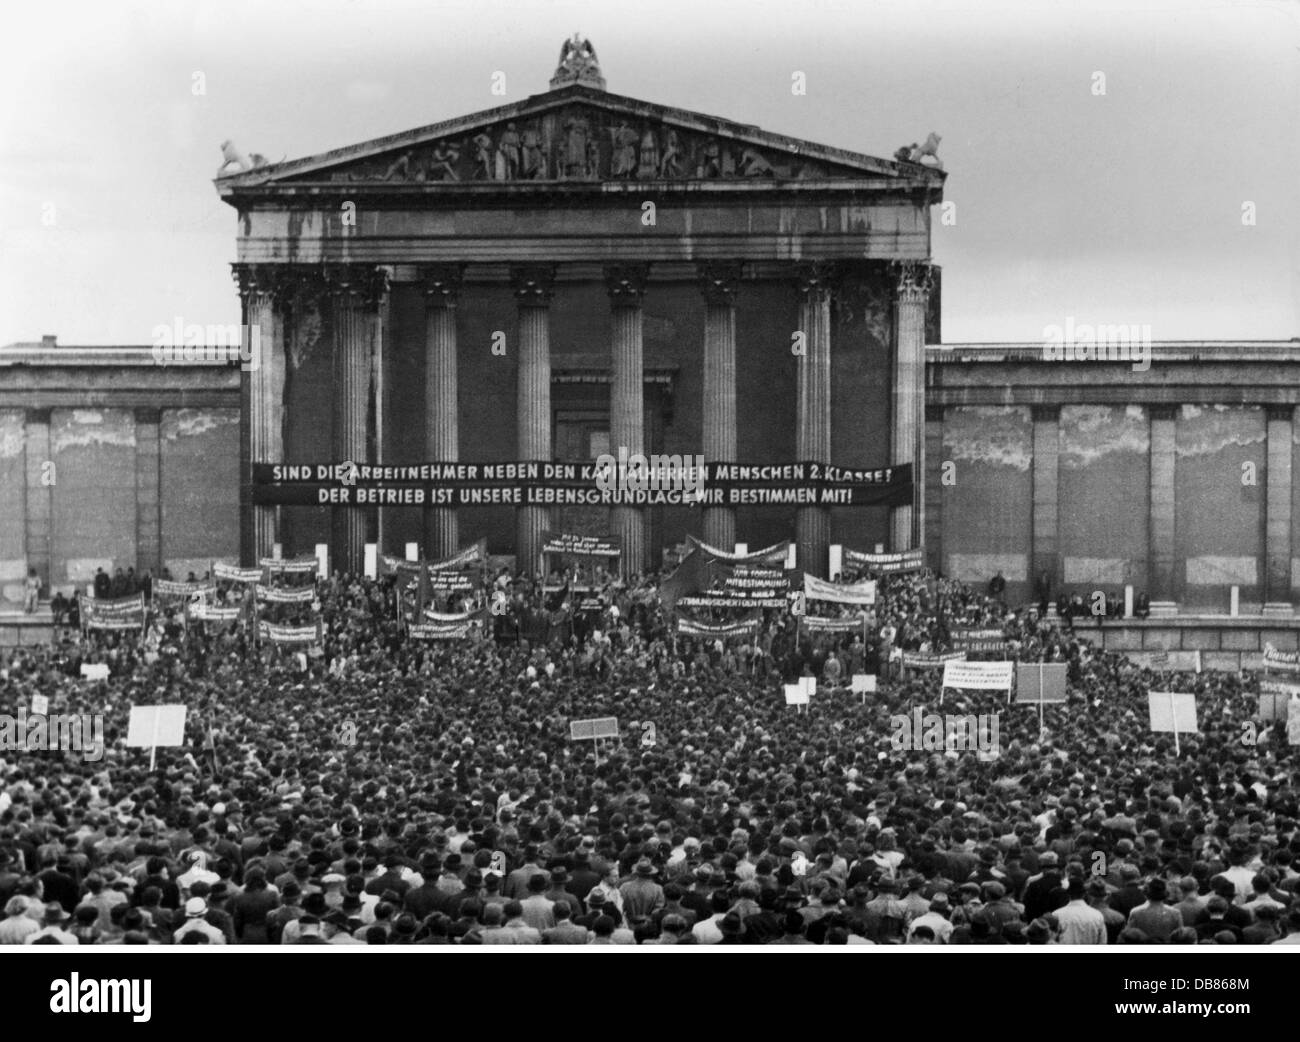 demonstrations, Germany, manifestation of the German federation of trade unions for the operational co-determination, - Stock Image